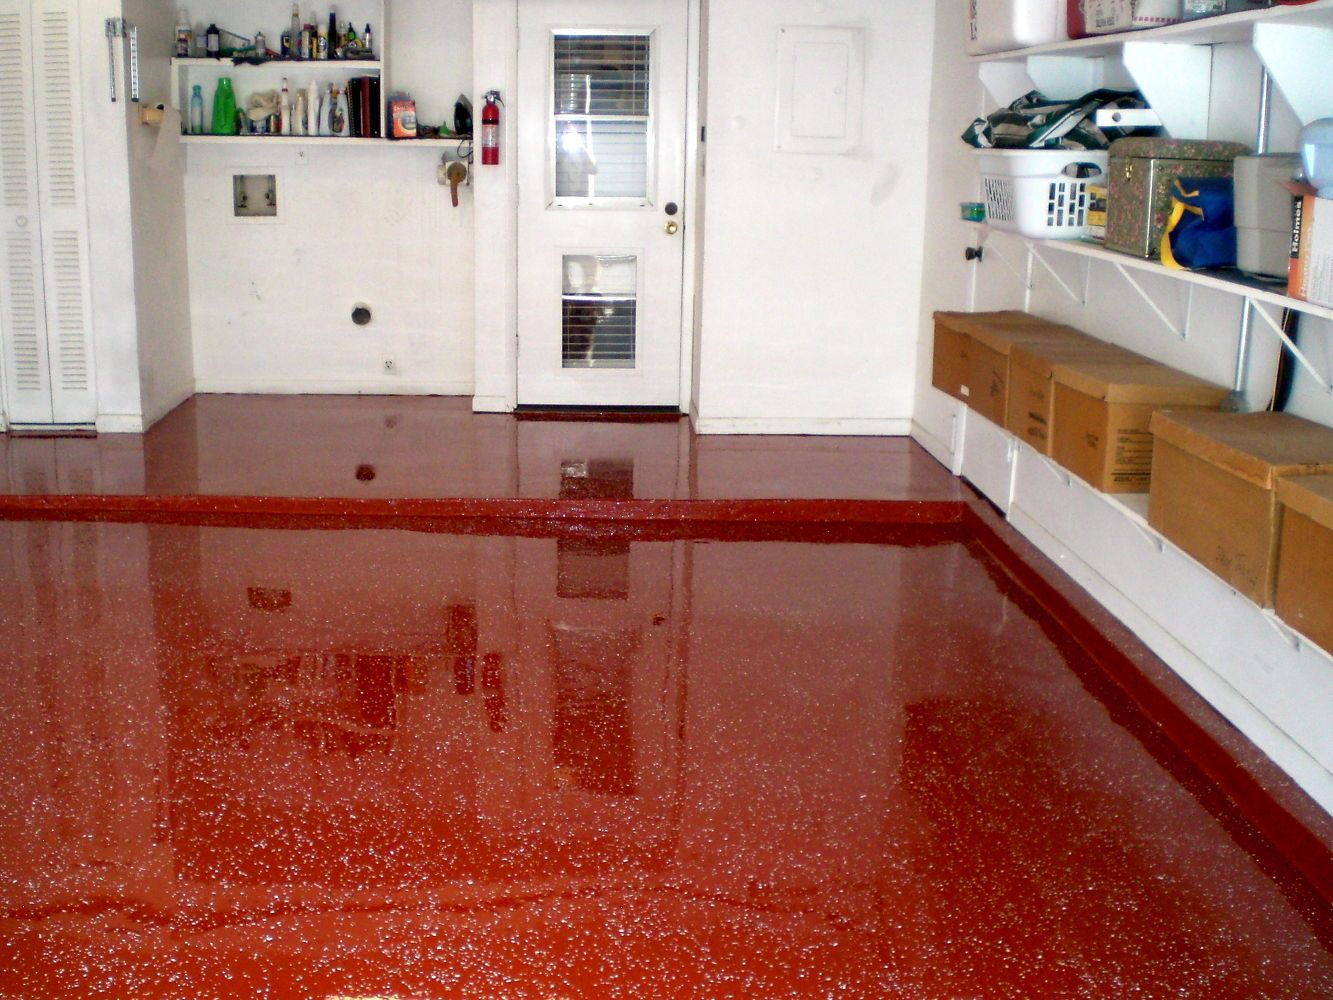 Its A Bit Daring But Every Client Who Ordered Red Epoxy Garage Floor Has Never Flooring Garages From Left To Right Ya Gotta Admit This Now